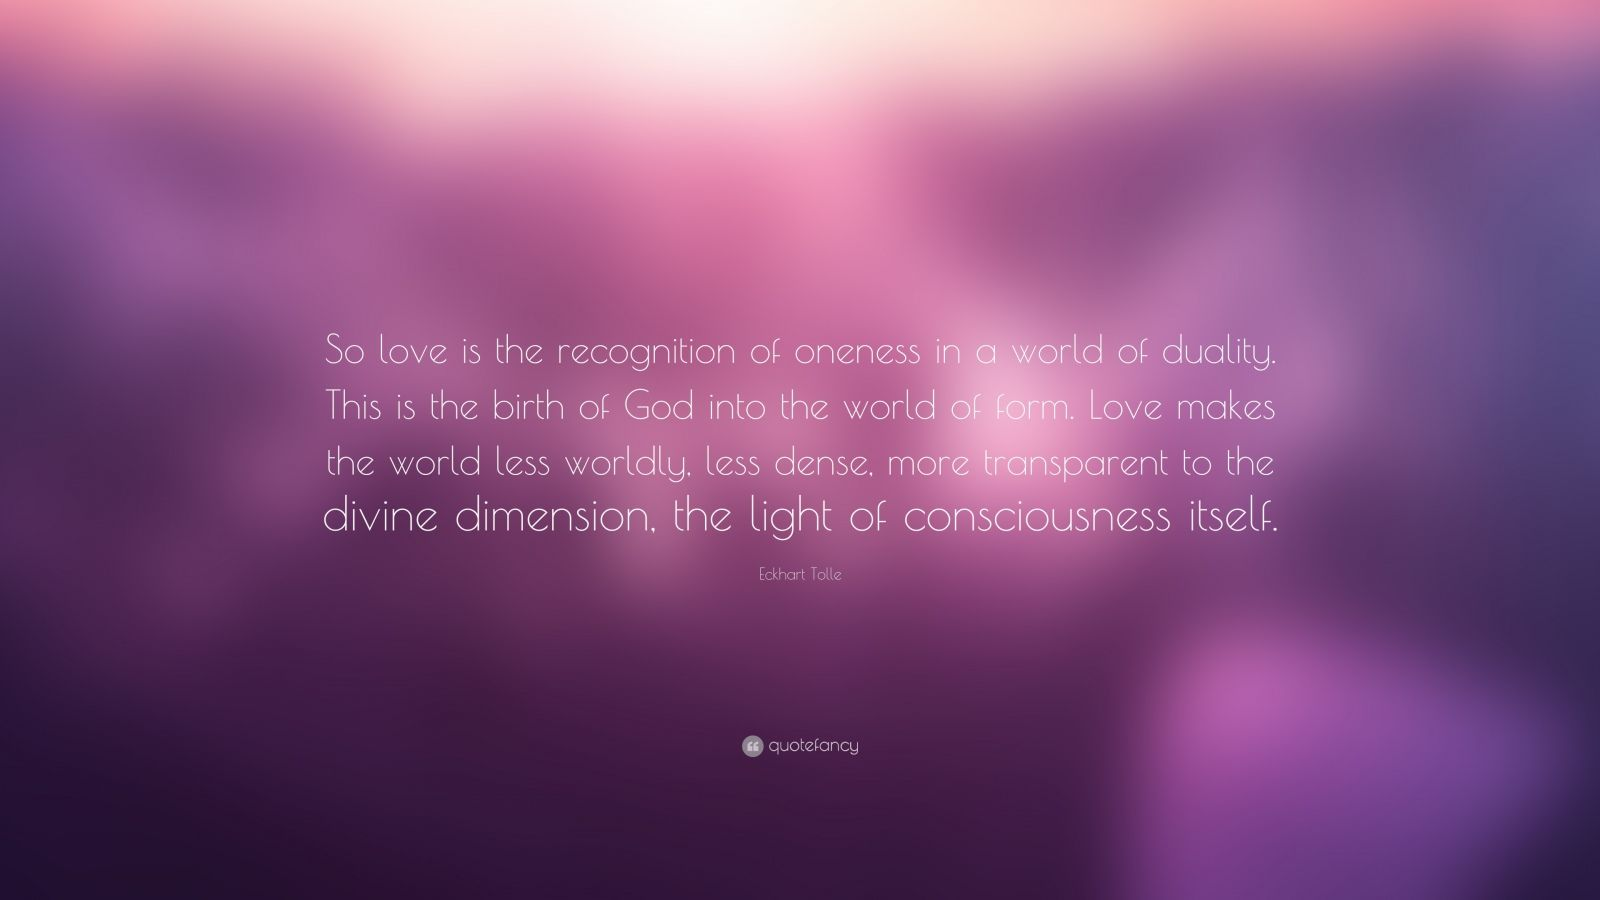 "Eckhart Tolle Quote: ""So love is the recognition of oneness in a world of duality. This is the birth of God into the world of form. Love makes the world less worldly, less dense, more transparent to the divine dimension, the light of consciousness itself."""